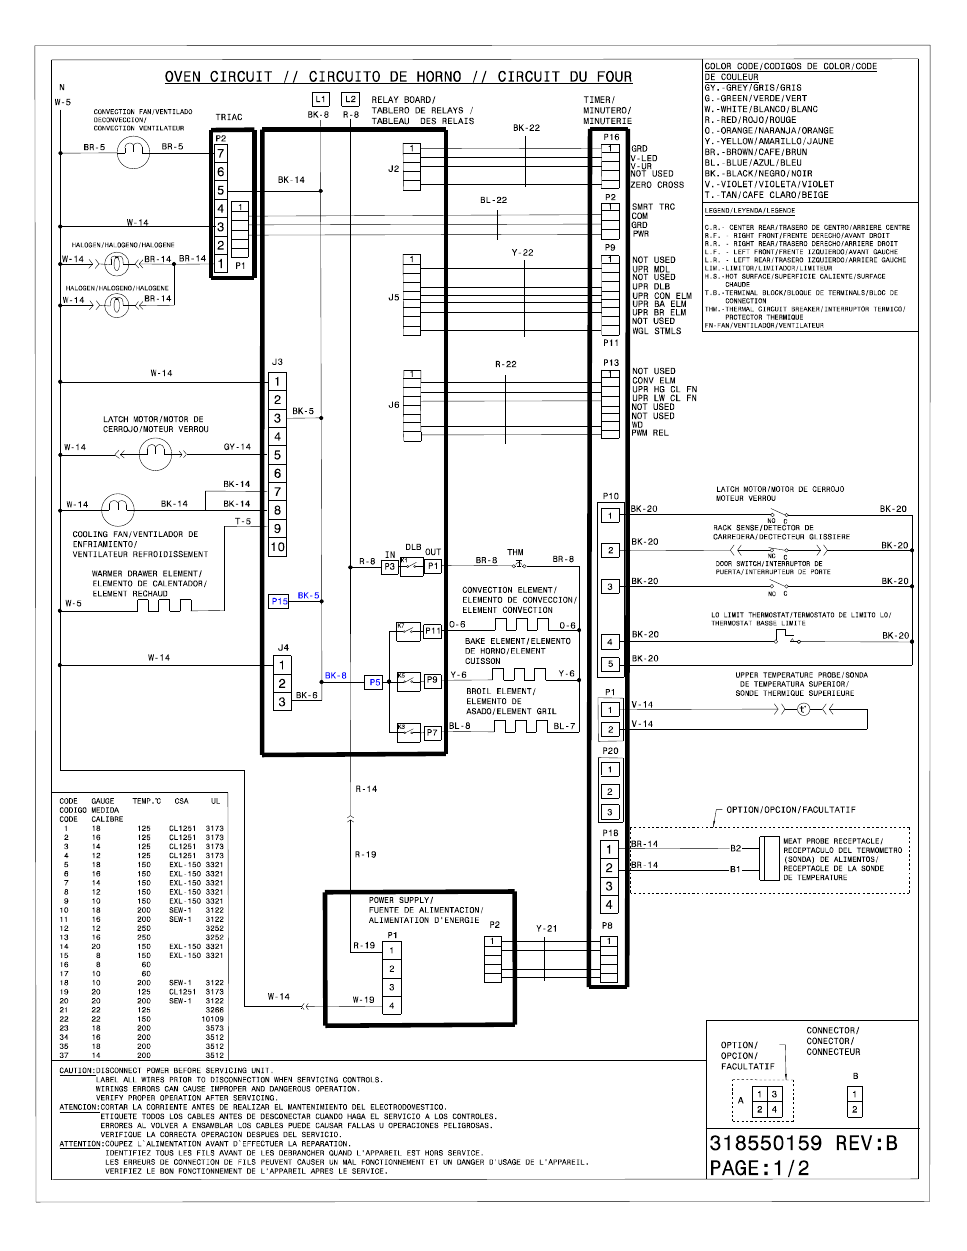 Rainbow Vacuum Wiring Diagram Library Cleaner Diagrams Electrolux Range Wire Data Schema U2022 Rh Wxapp Pw 2100 Repair Manual